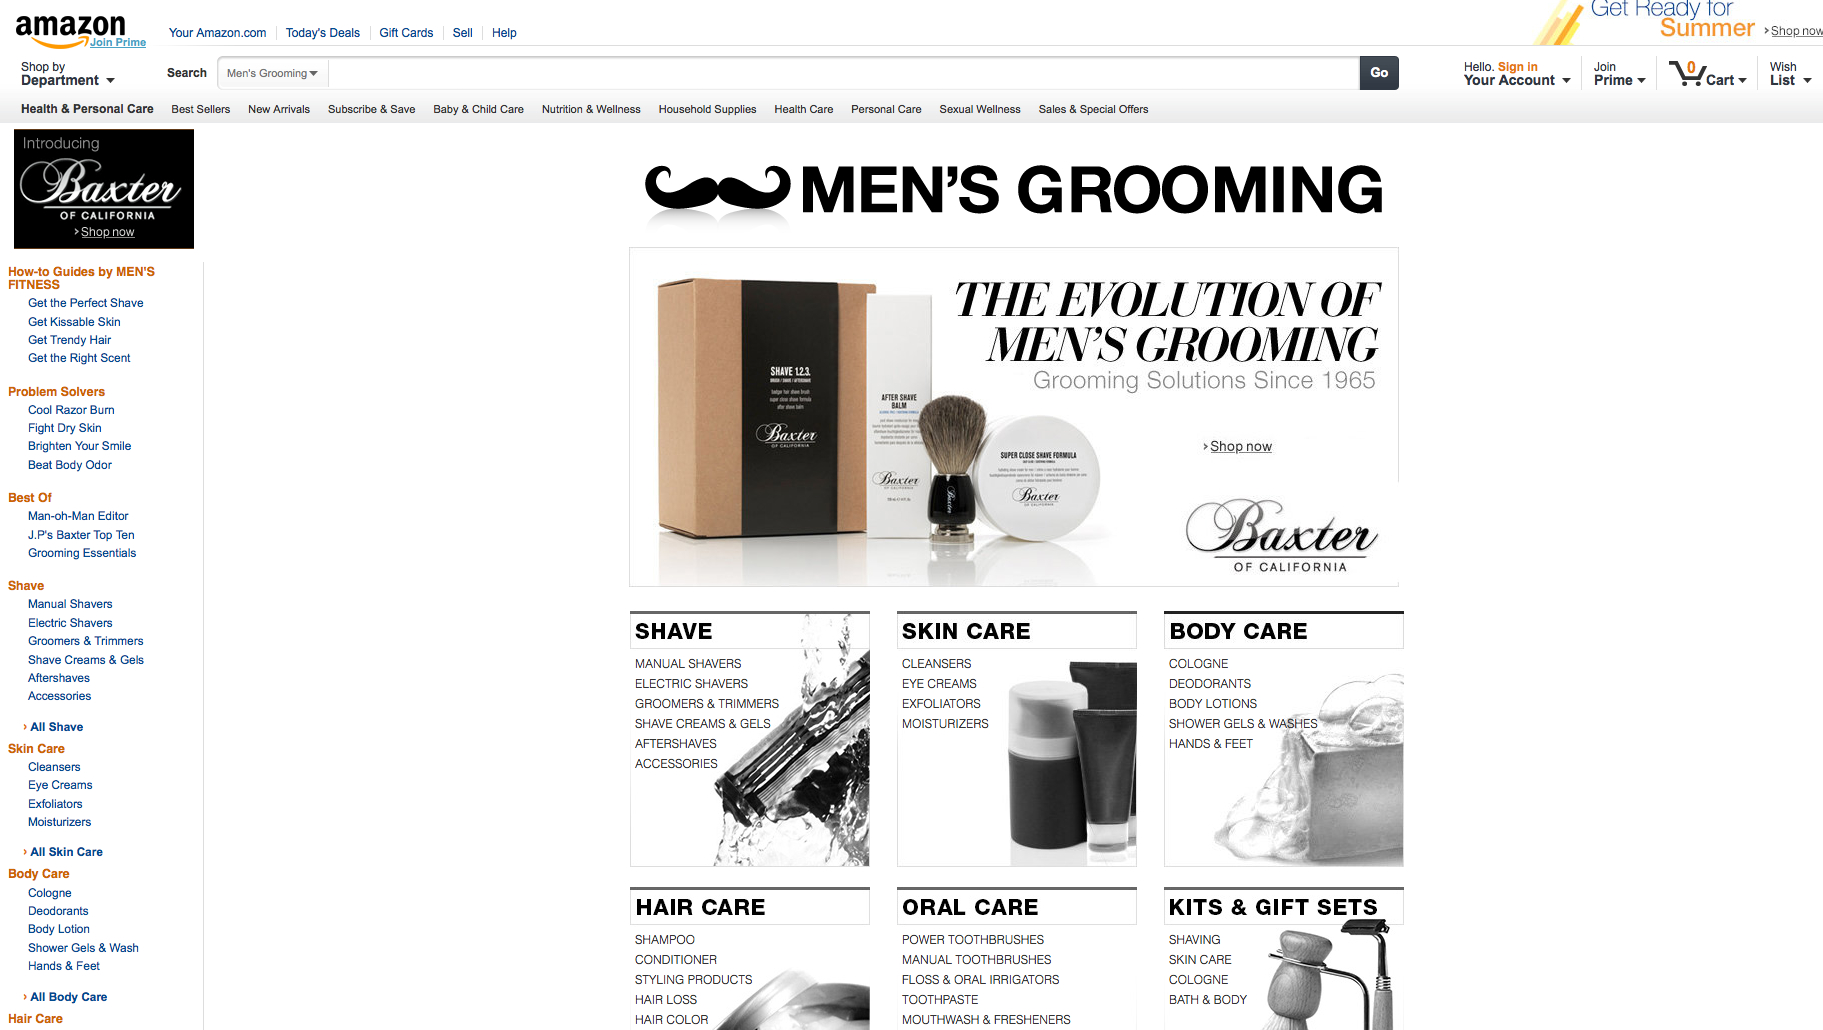 Amazon launches men's grooming store